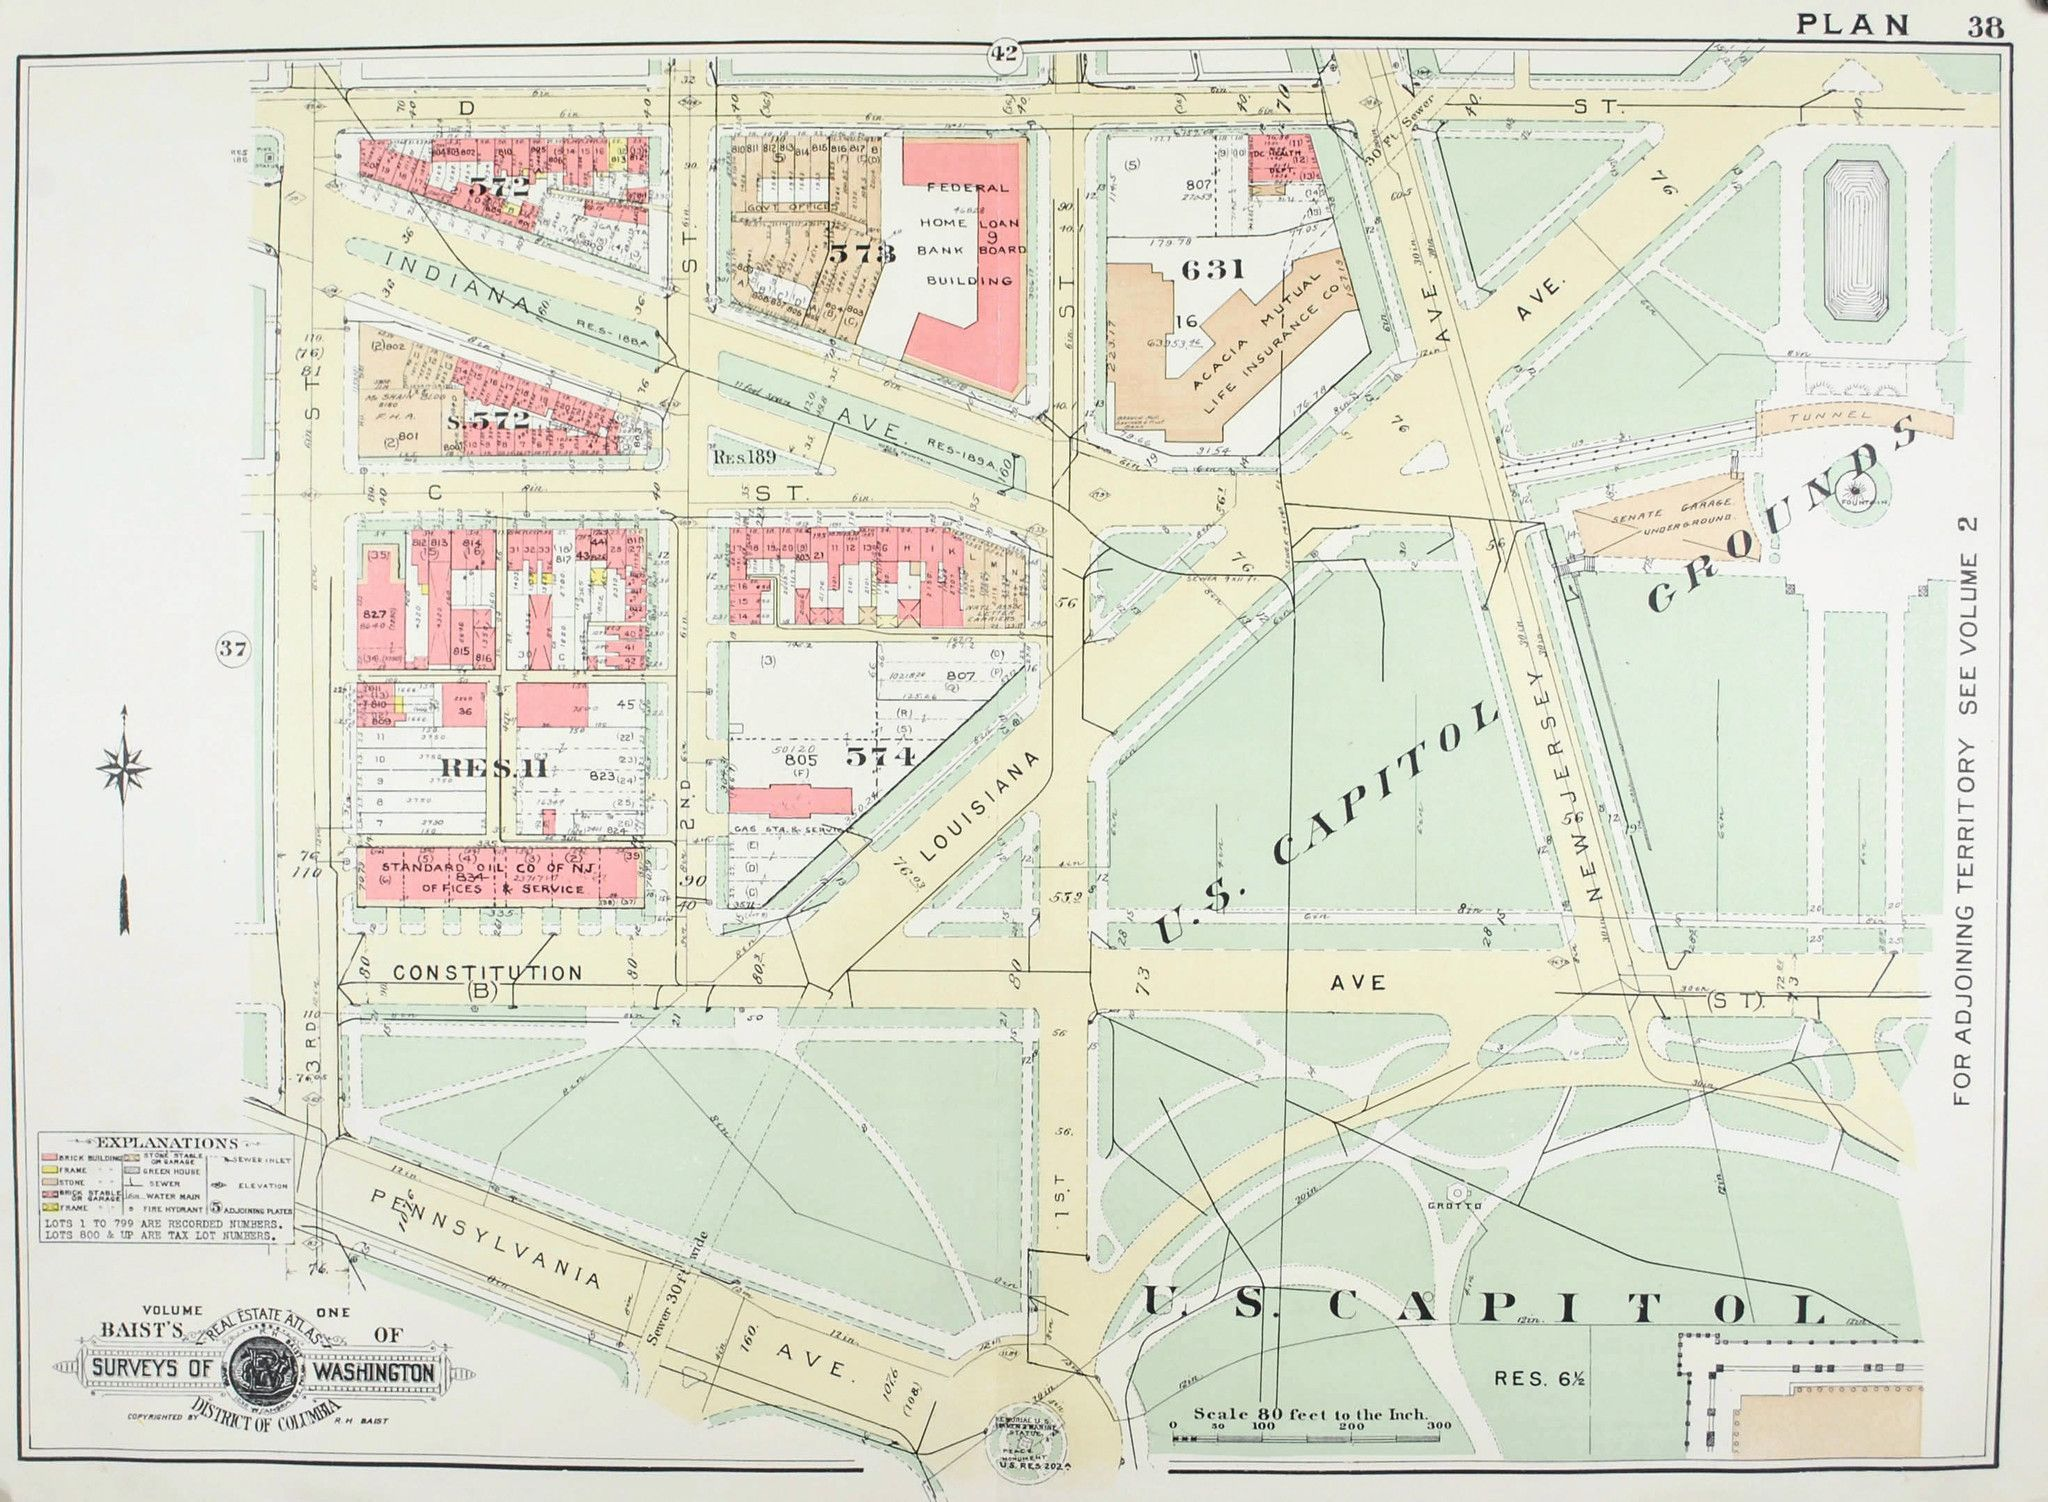 1957 Washington DC Plan 38 Baist City maps and Products